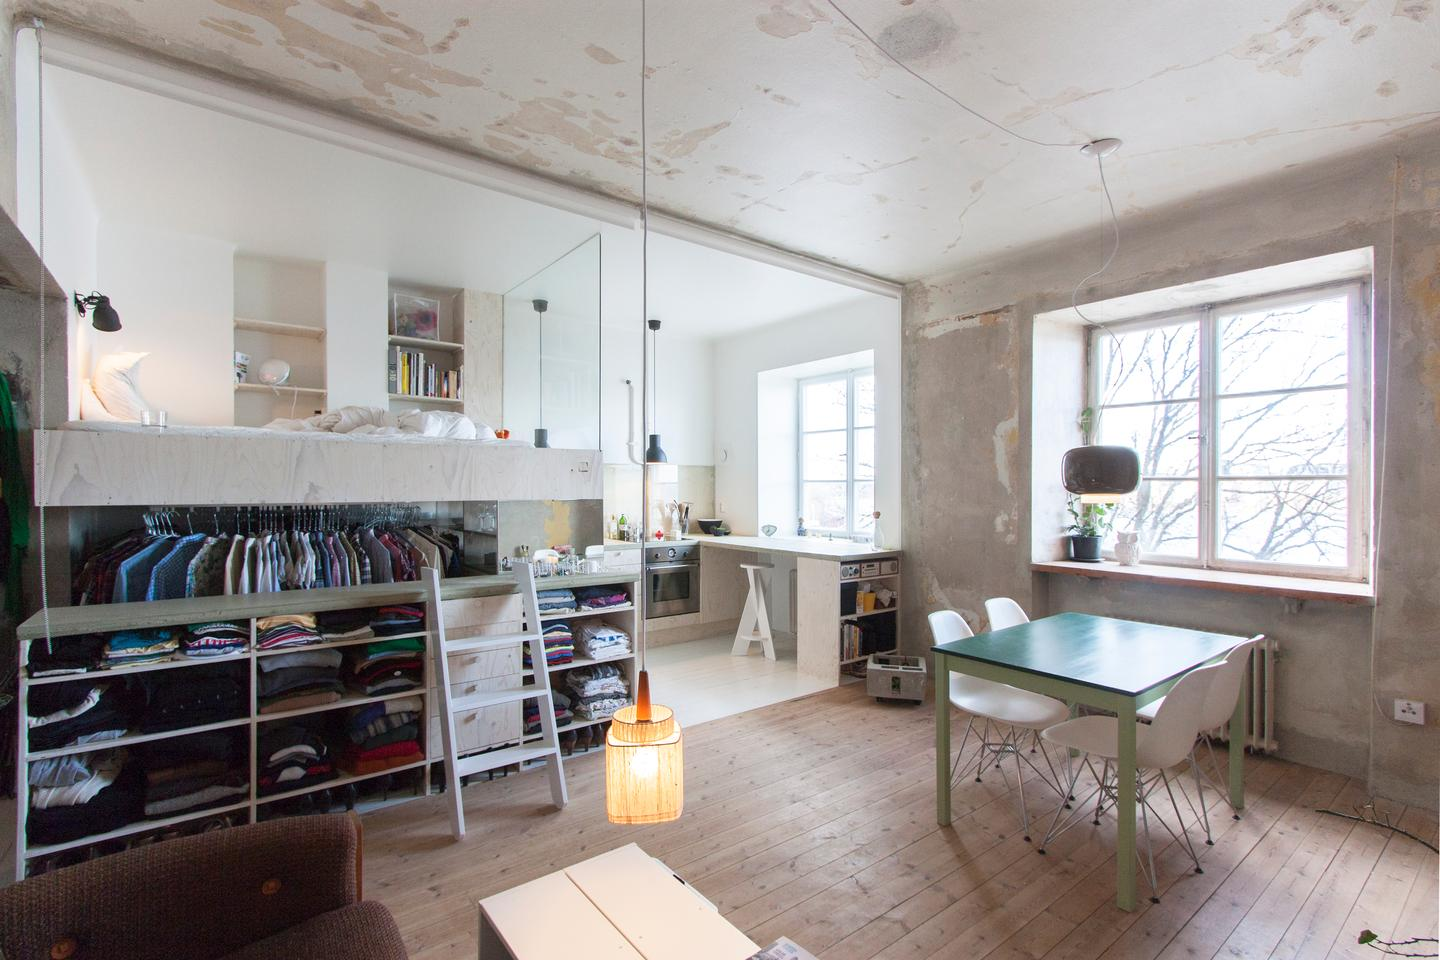 Swedish architect Karin Matz transformed an abandoned space it into a multi-purpose tiny home